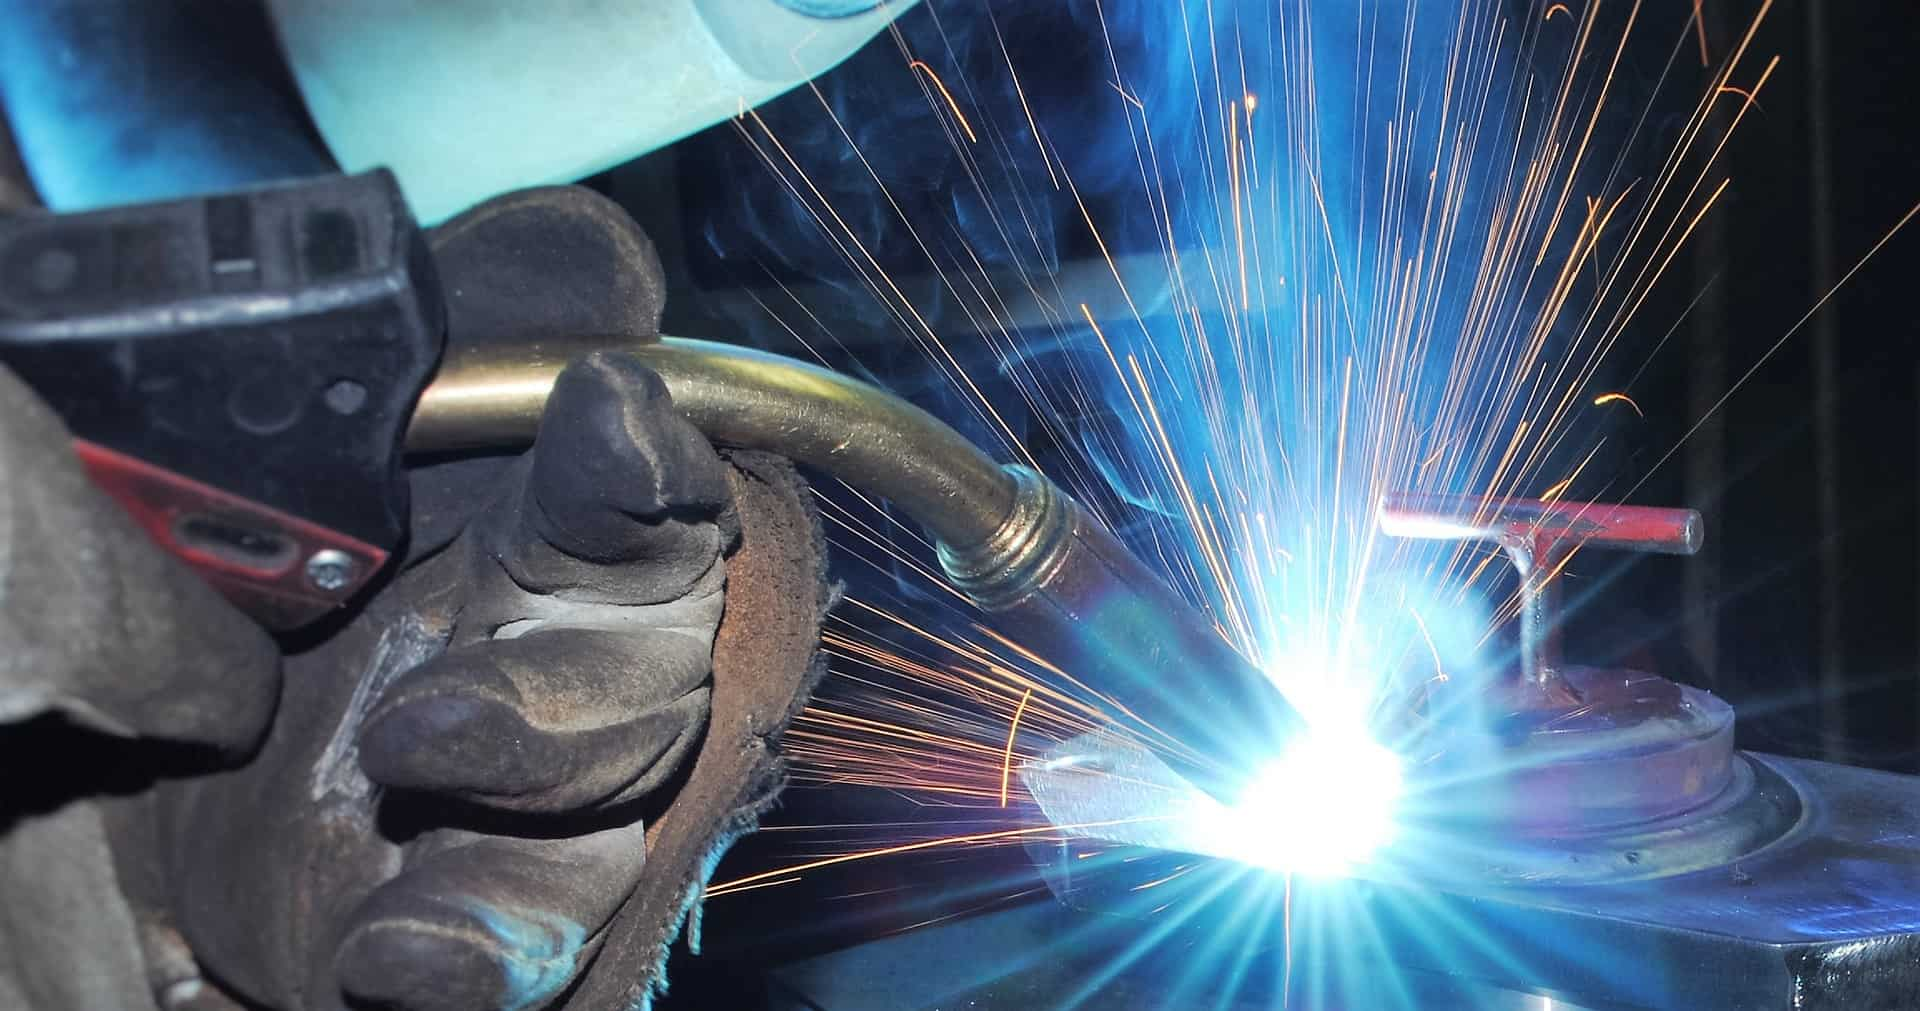 How to MIG Weld? Top Mig Welding Tips and Tricks 2018